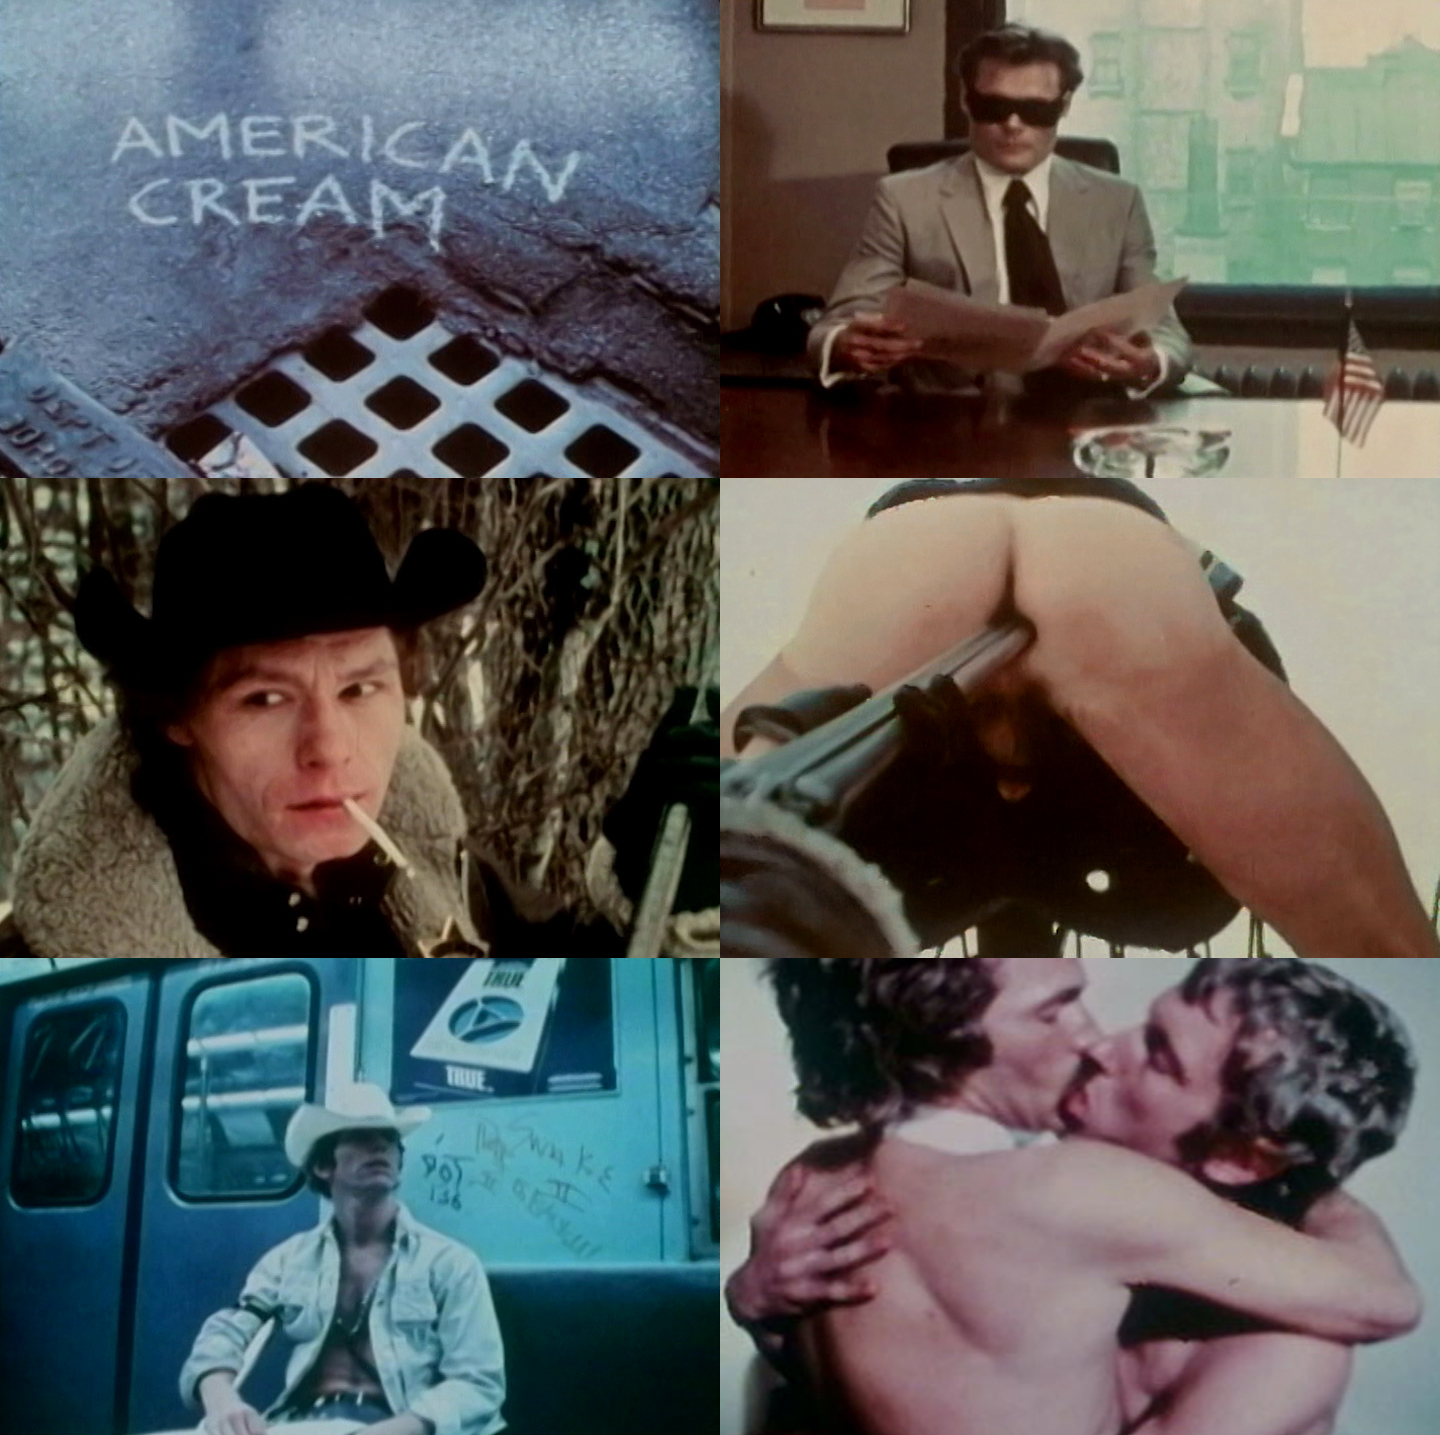 Images from American Cream